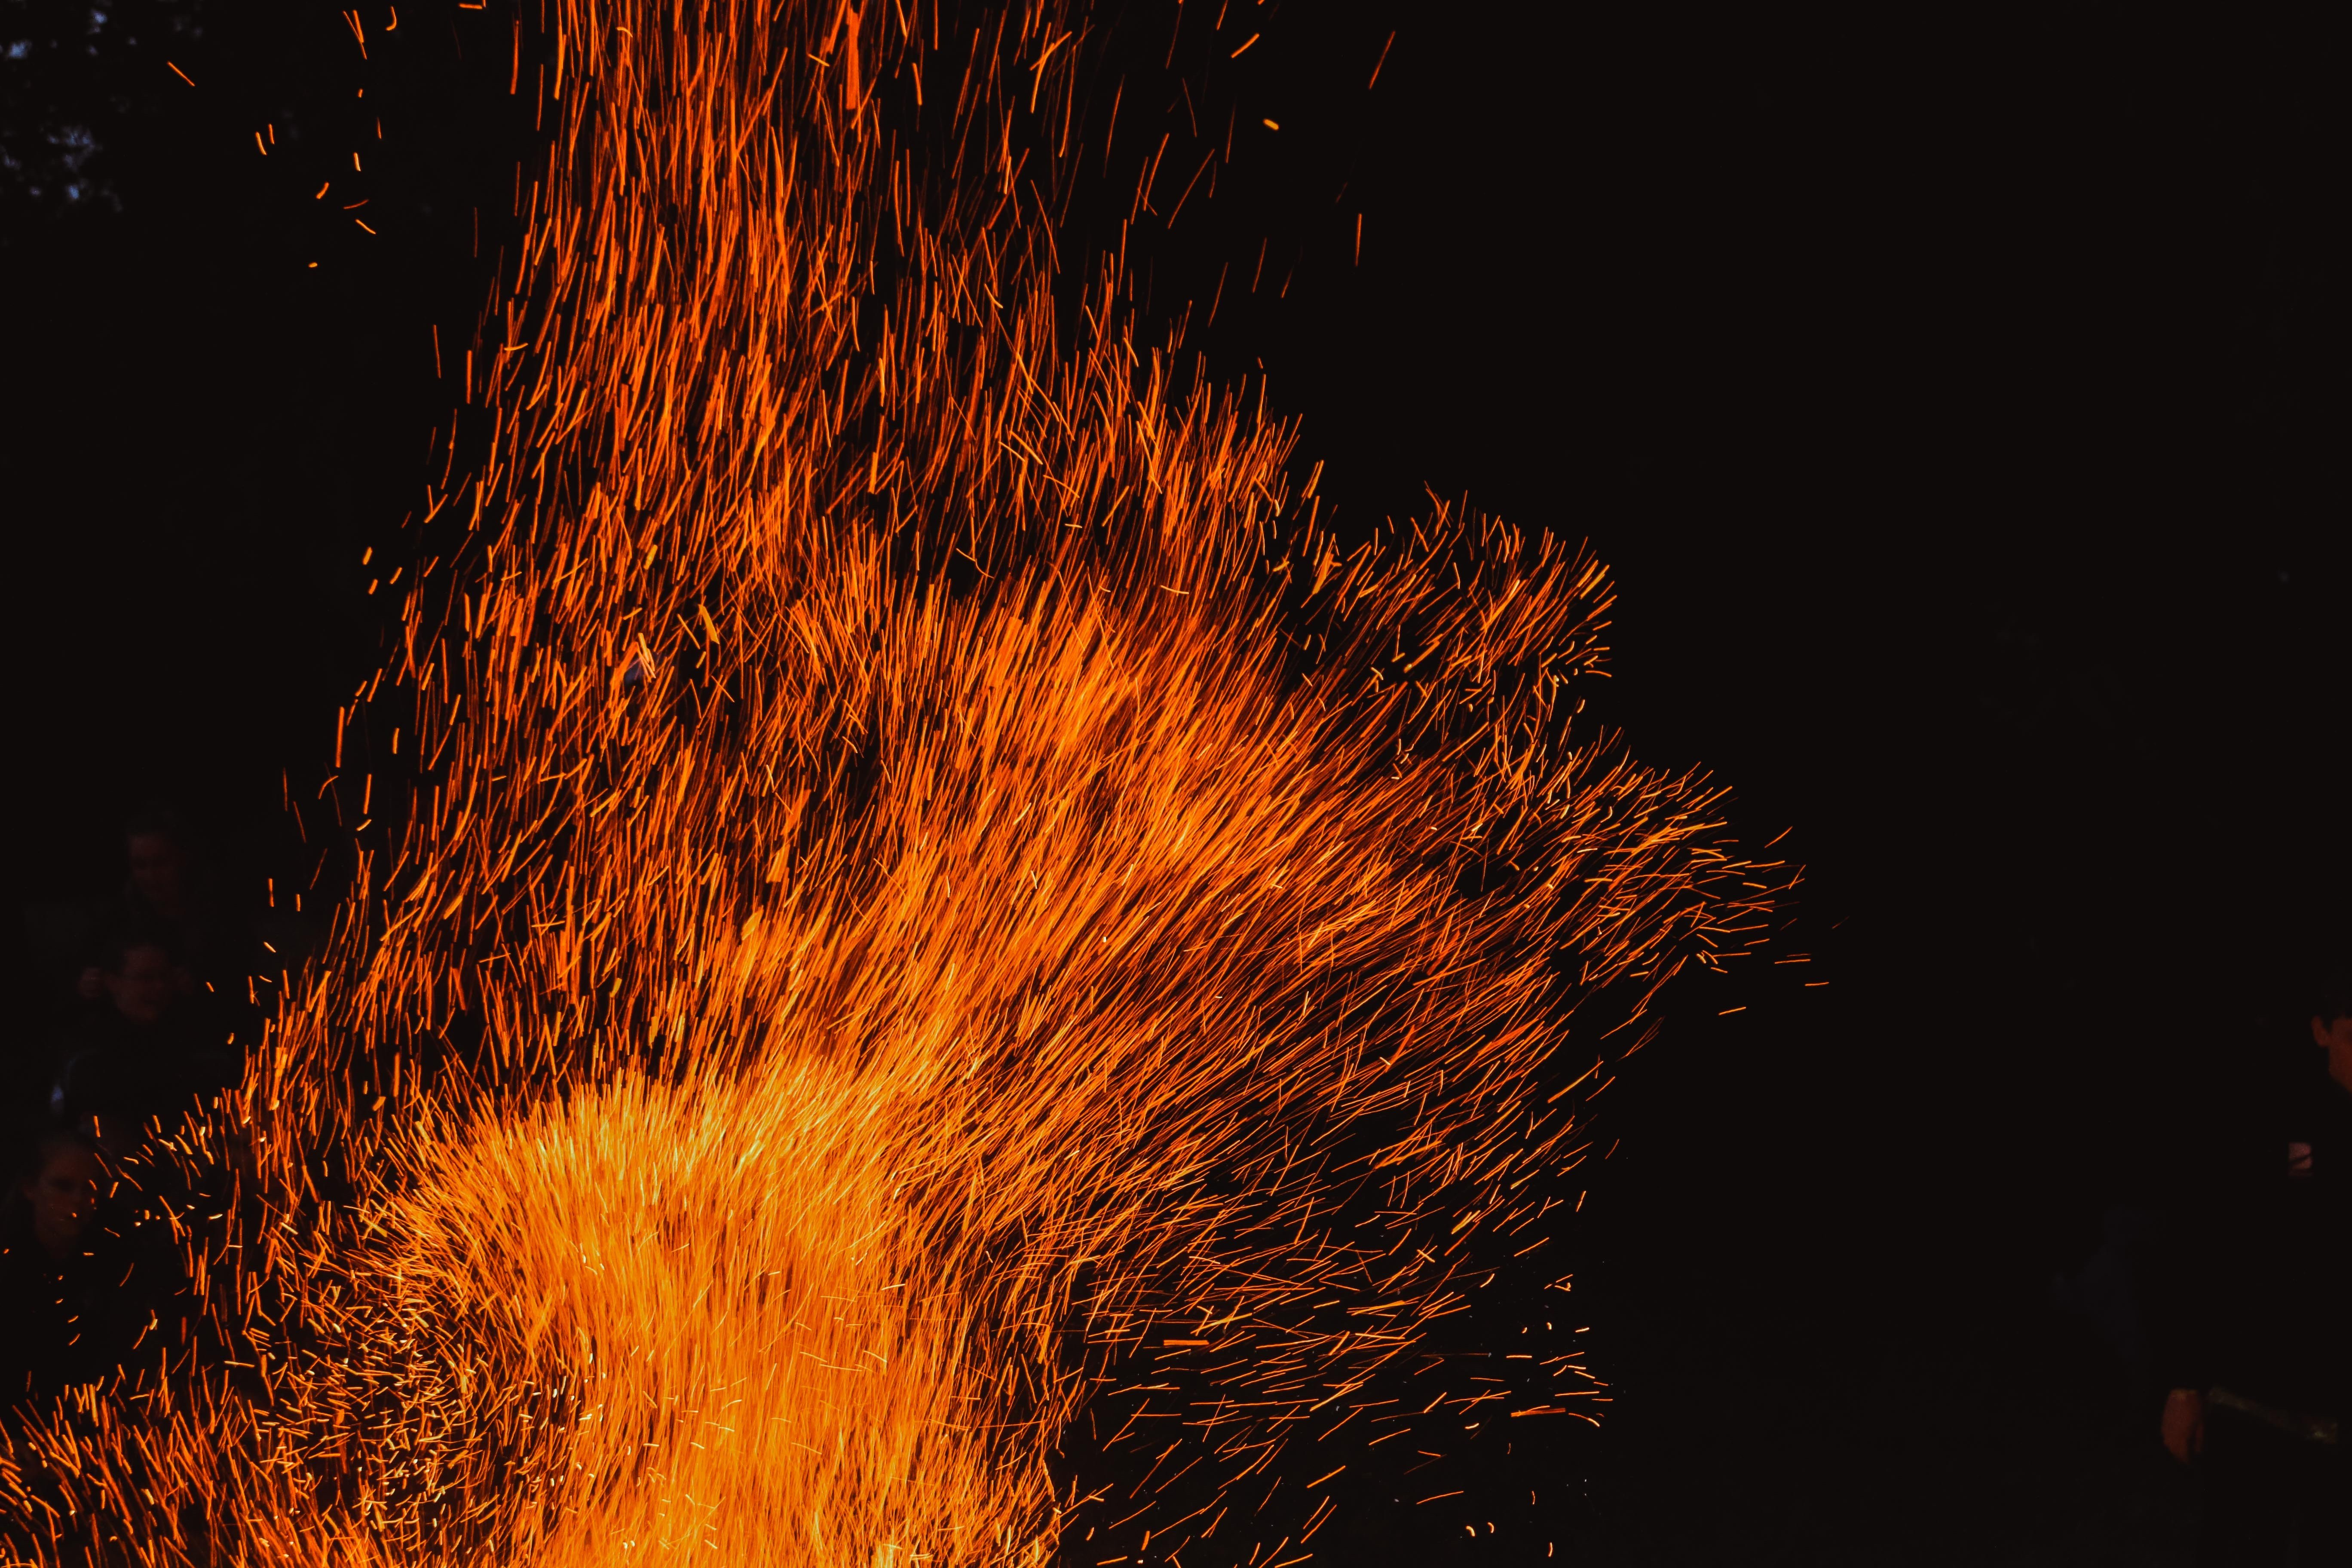 Sparks from a fire.